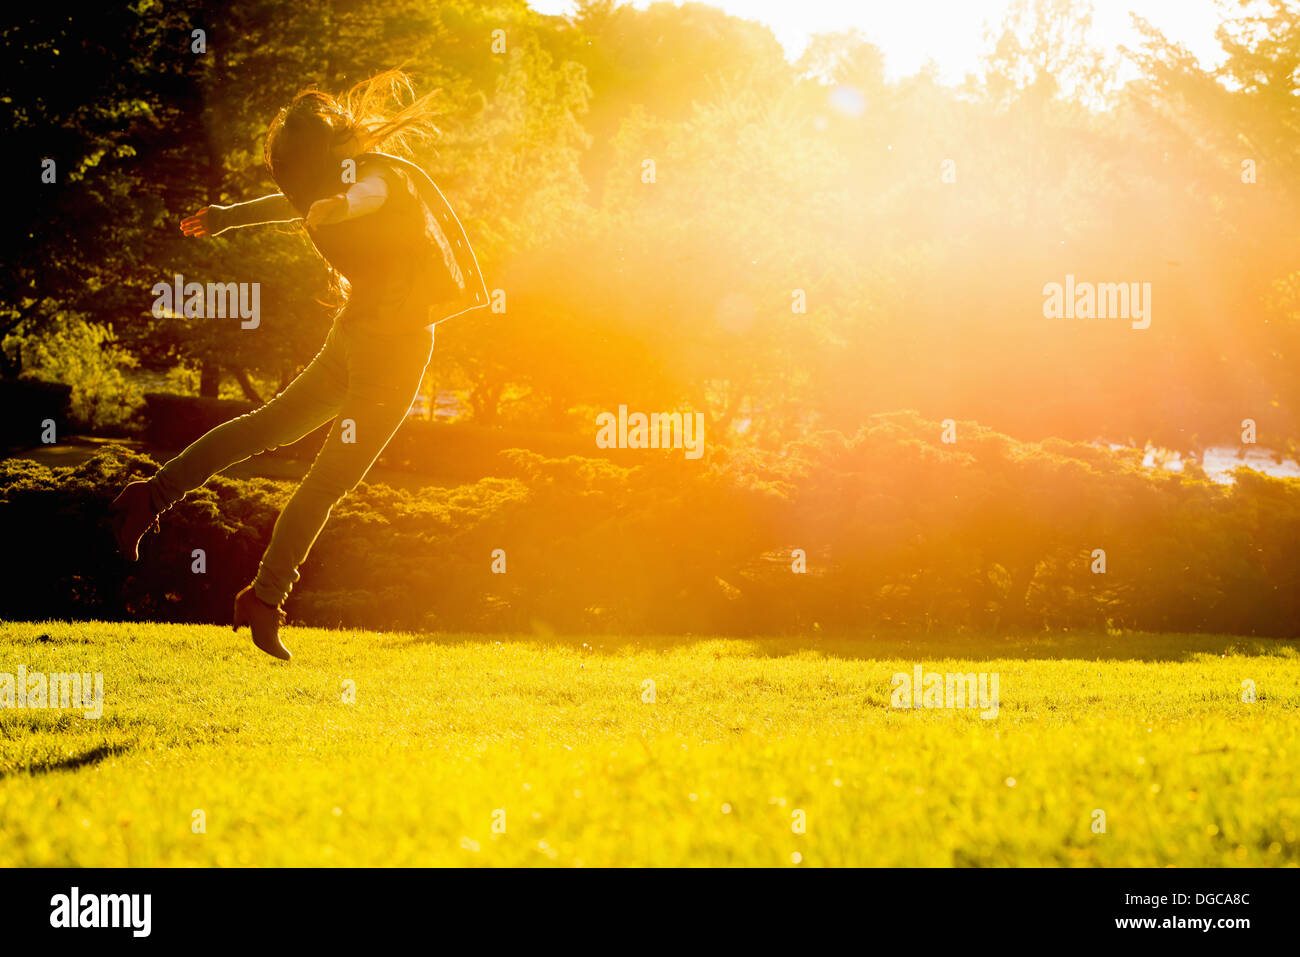 Young female jumping mid air in park - Stock Image